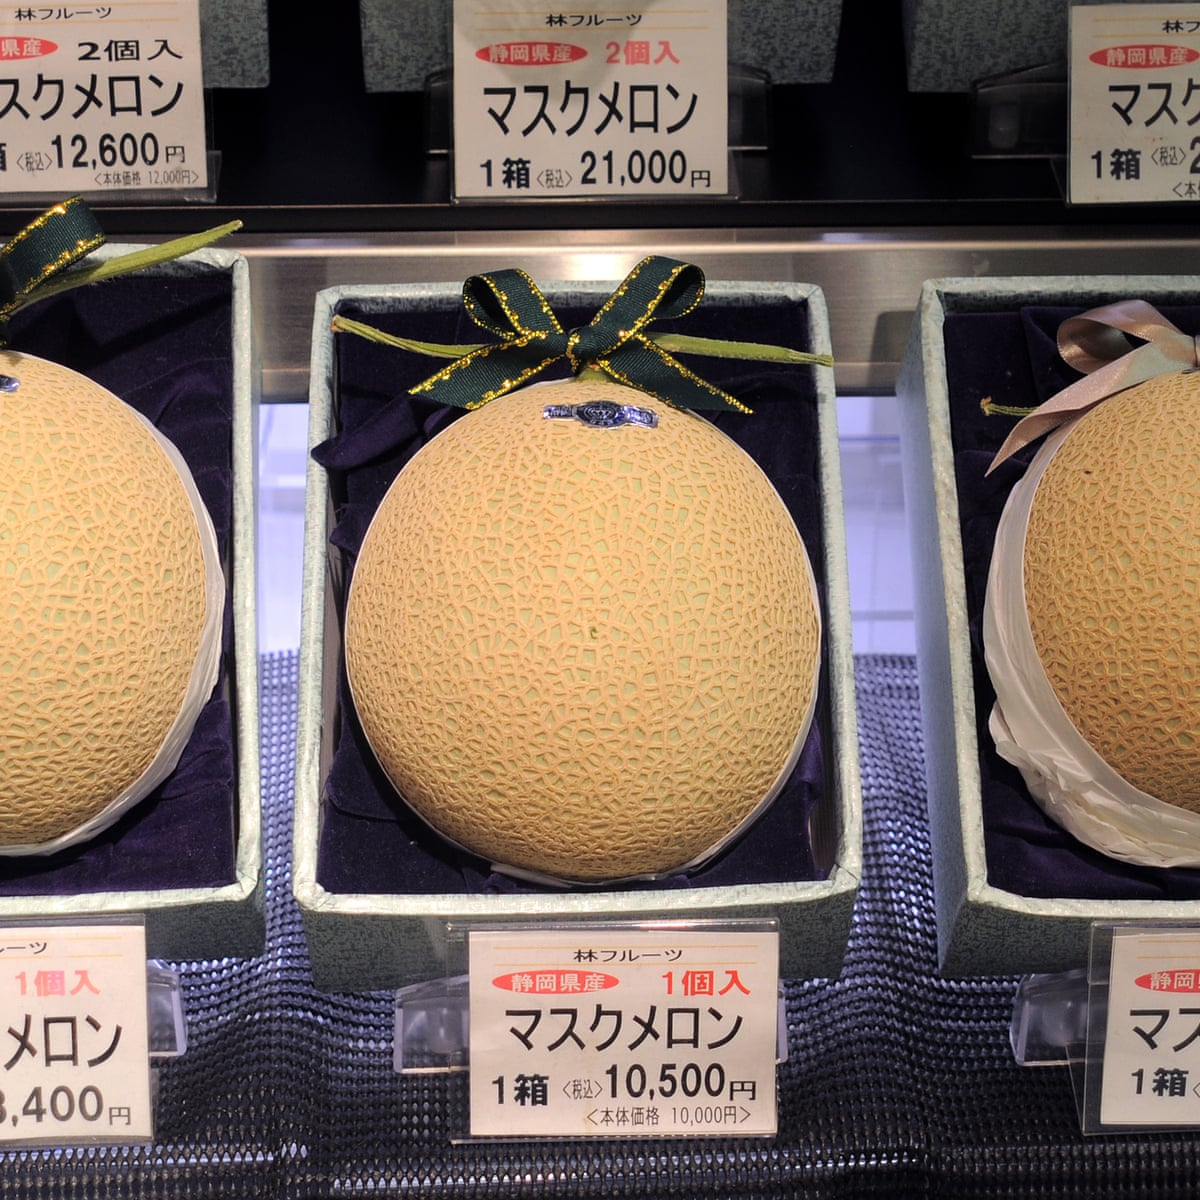 200 Melons How Japan S High End Fruit Reveals Our Attitudes To Agriculture Adam Liaw Food The Guardian Alaskan king crab, tinctured cantaloupe, avocado pureé, cilantro brown butter by chef chris alaskan king crab: 200 melons how japan s high end fruit